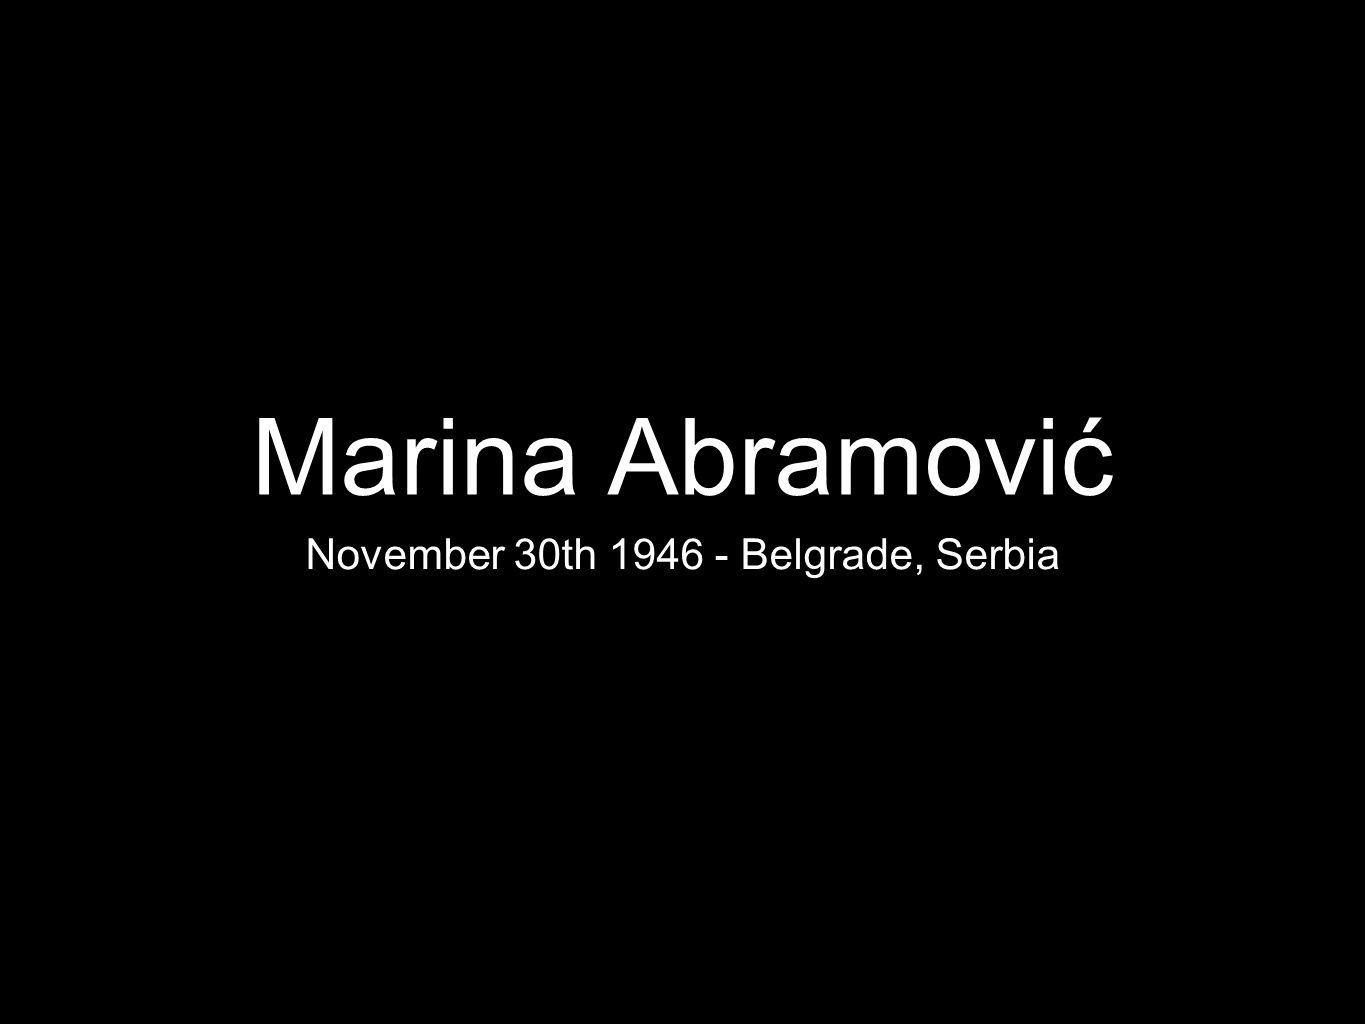 Ideas Career began in the early 1970s and Abramović s work is described as exploring the relationship between performer and audience, the limits of the body, and the possibilities of the mind.